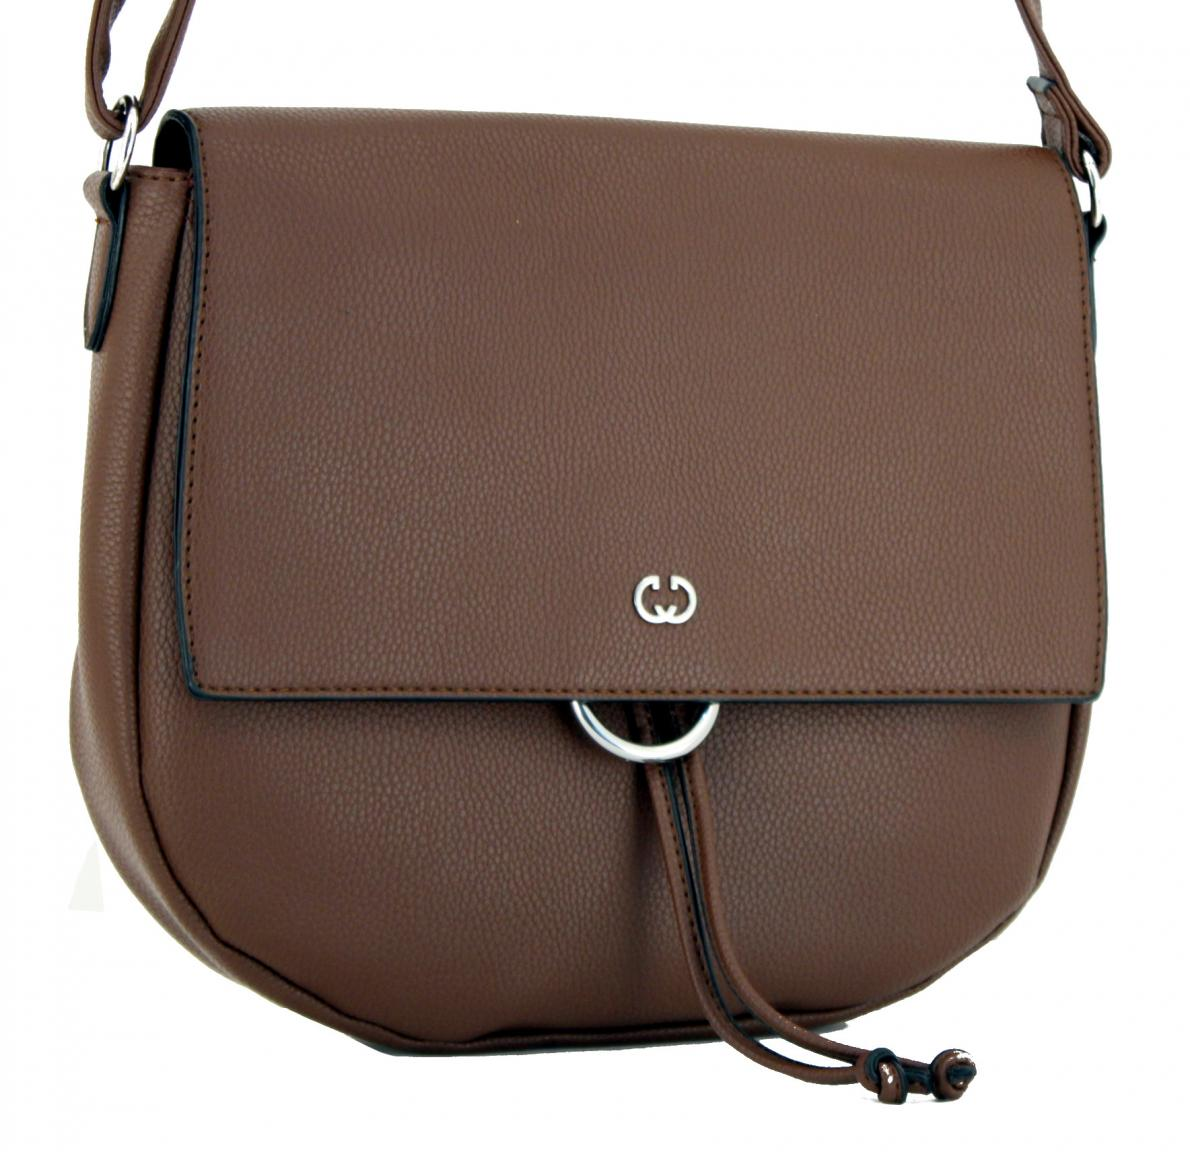 Umhängetasche Flash Over Gerry Weber Cognac Old braun